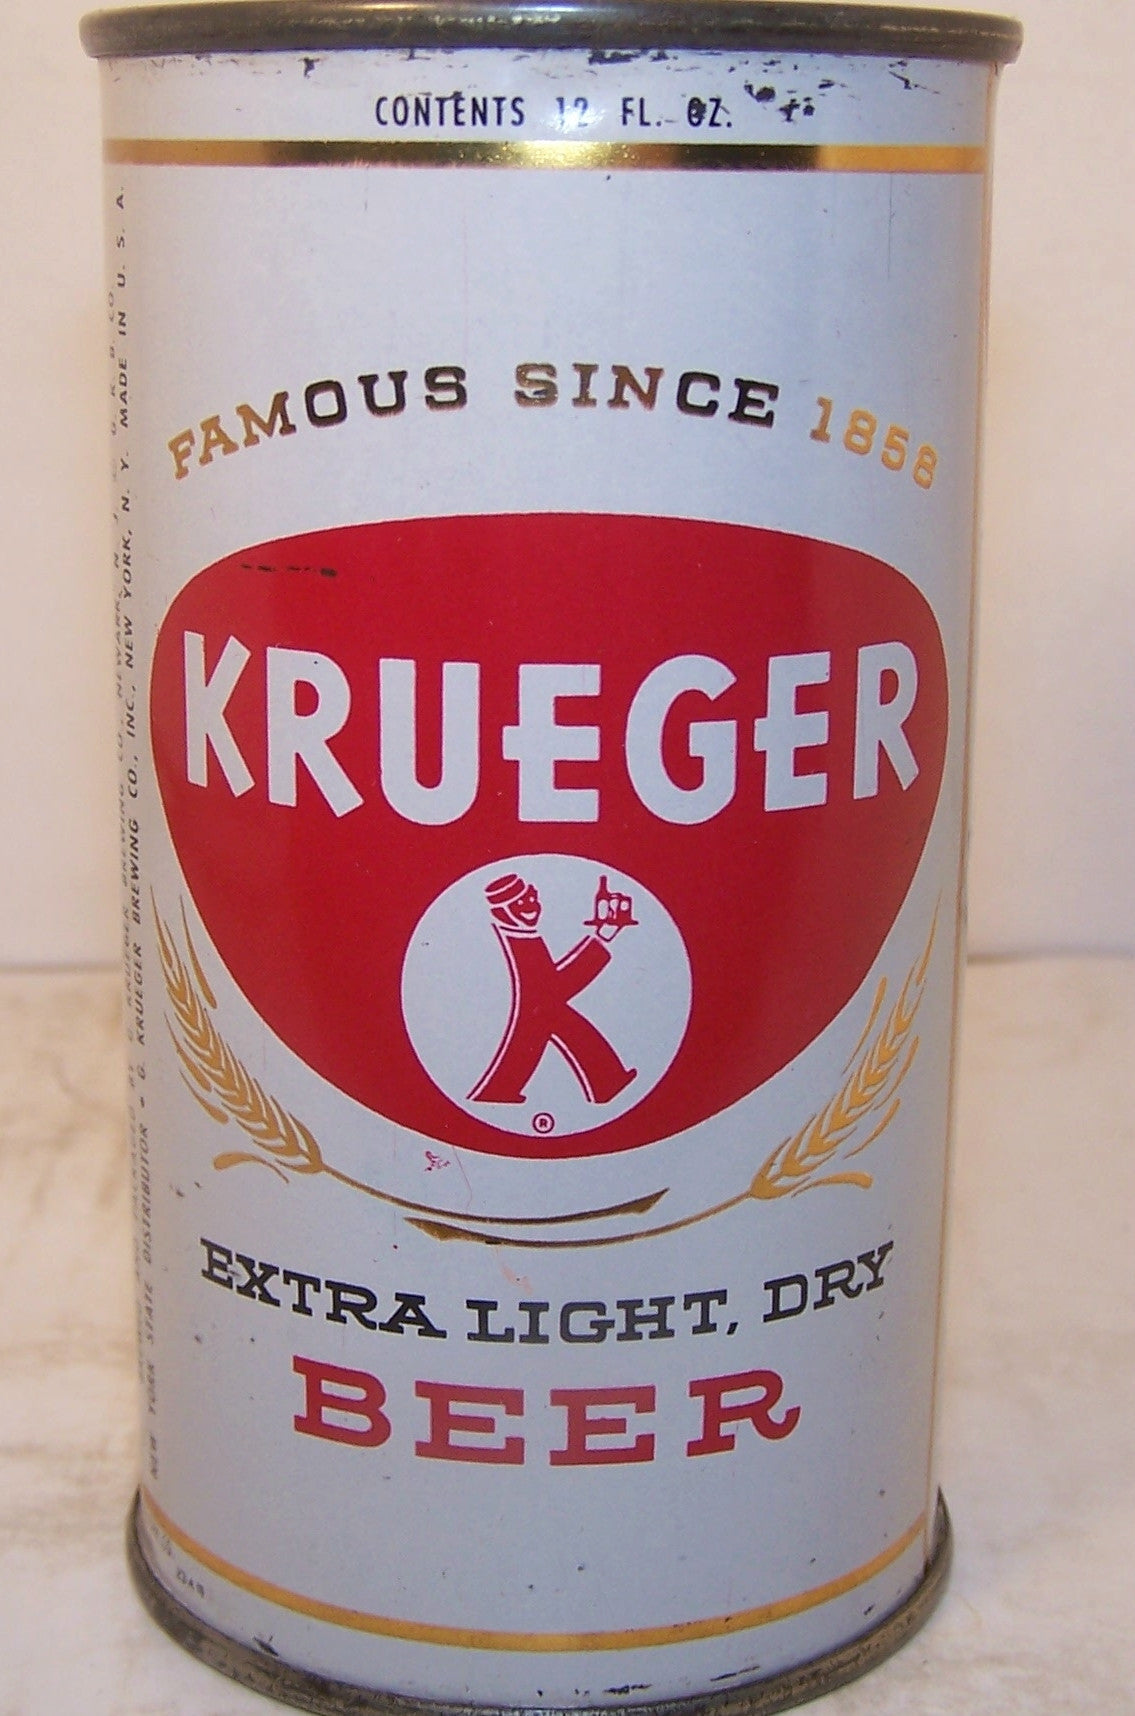 Krueger Extra Light Dry Beer, USBC 90-20, Grade 1